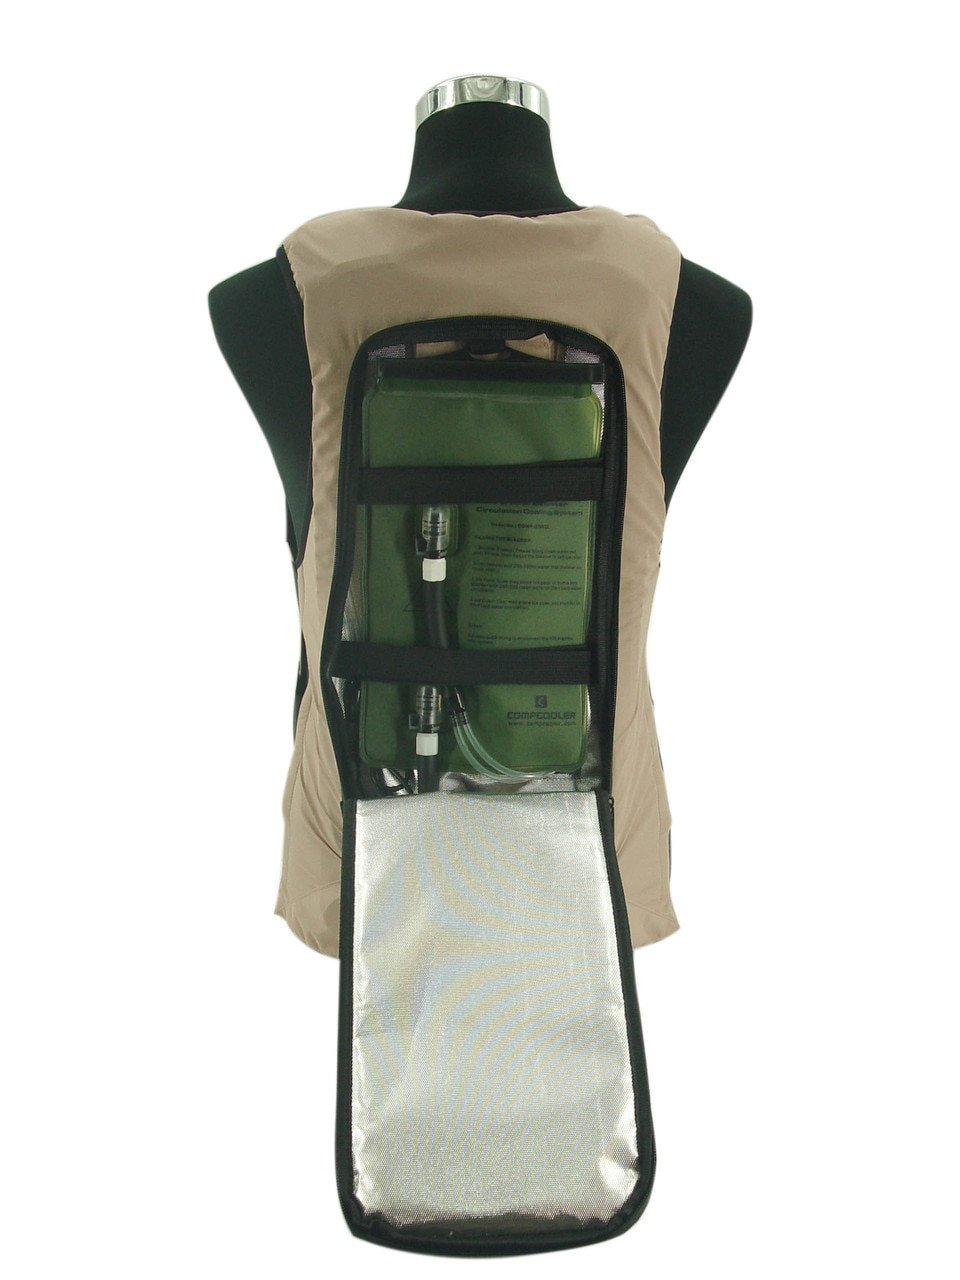 Ice Water Circulating Cooling Vest Tan Detachable Bladder M-L by Compcooler (Image #3)